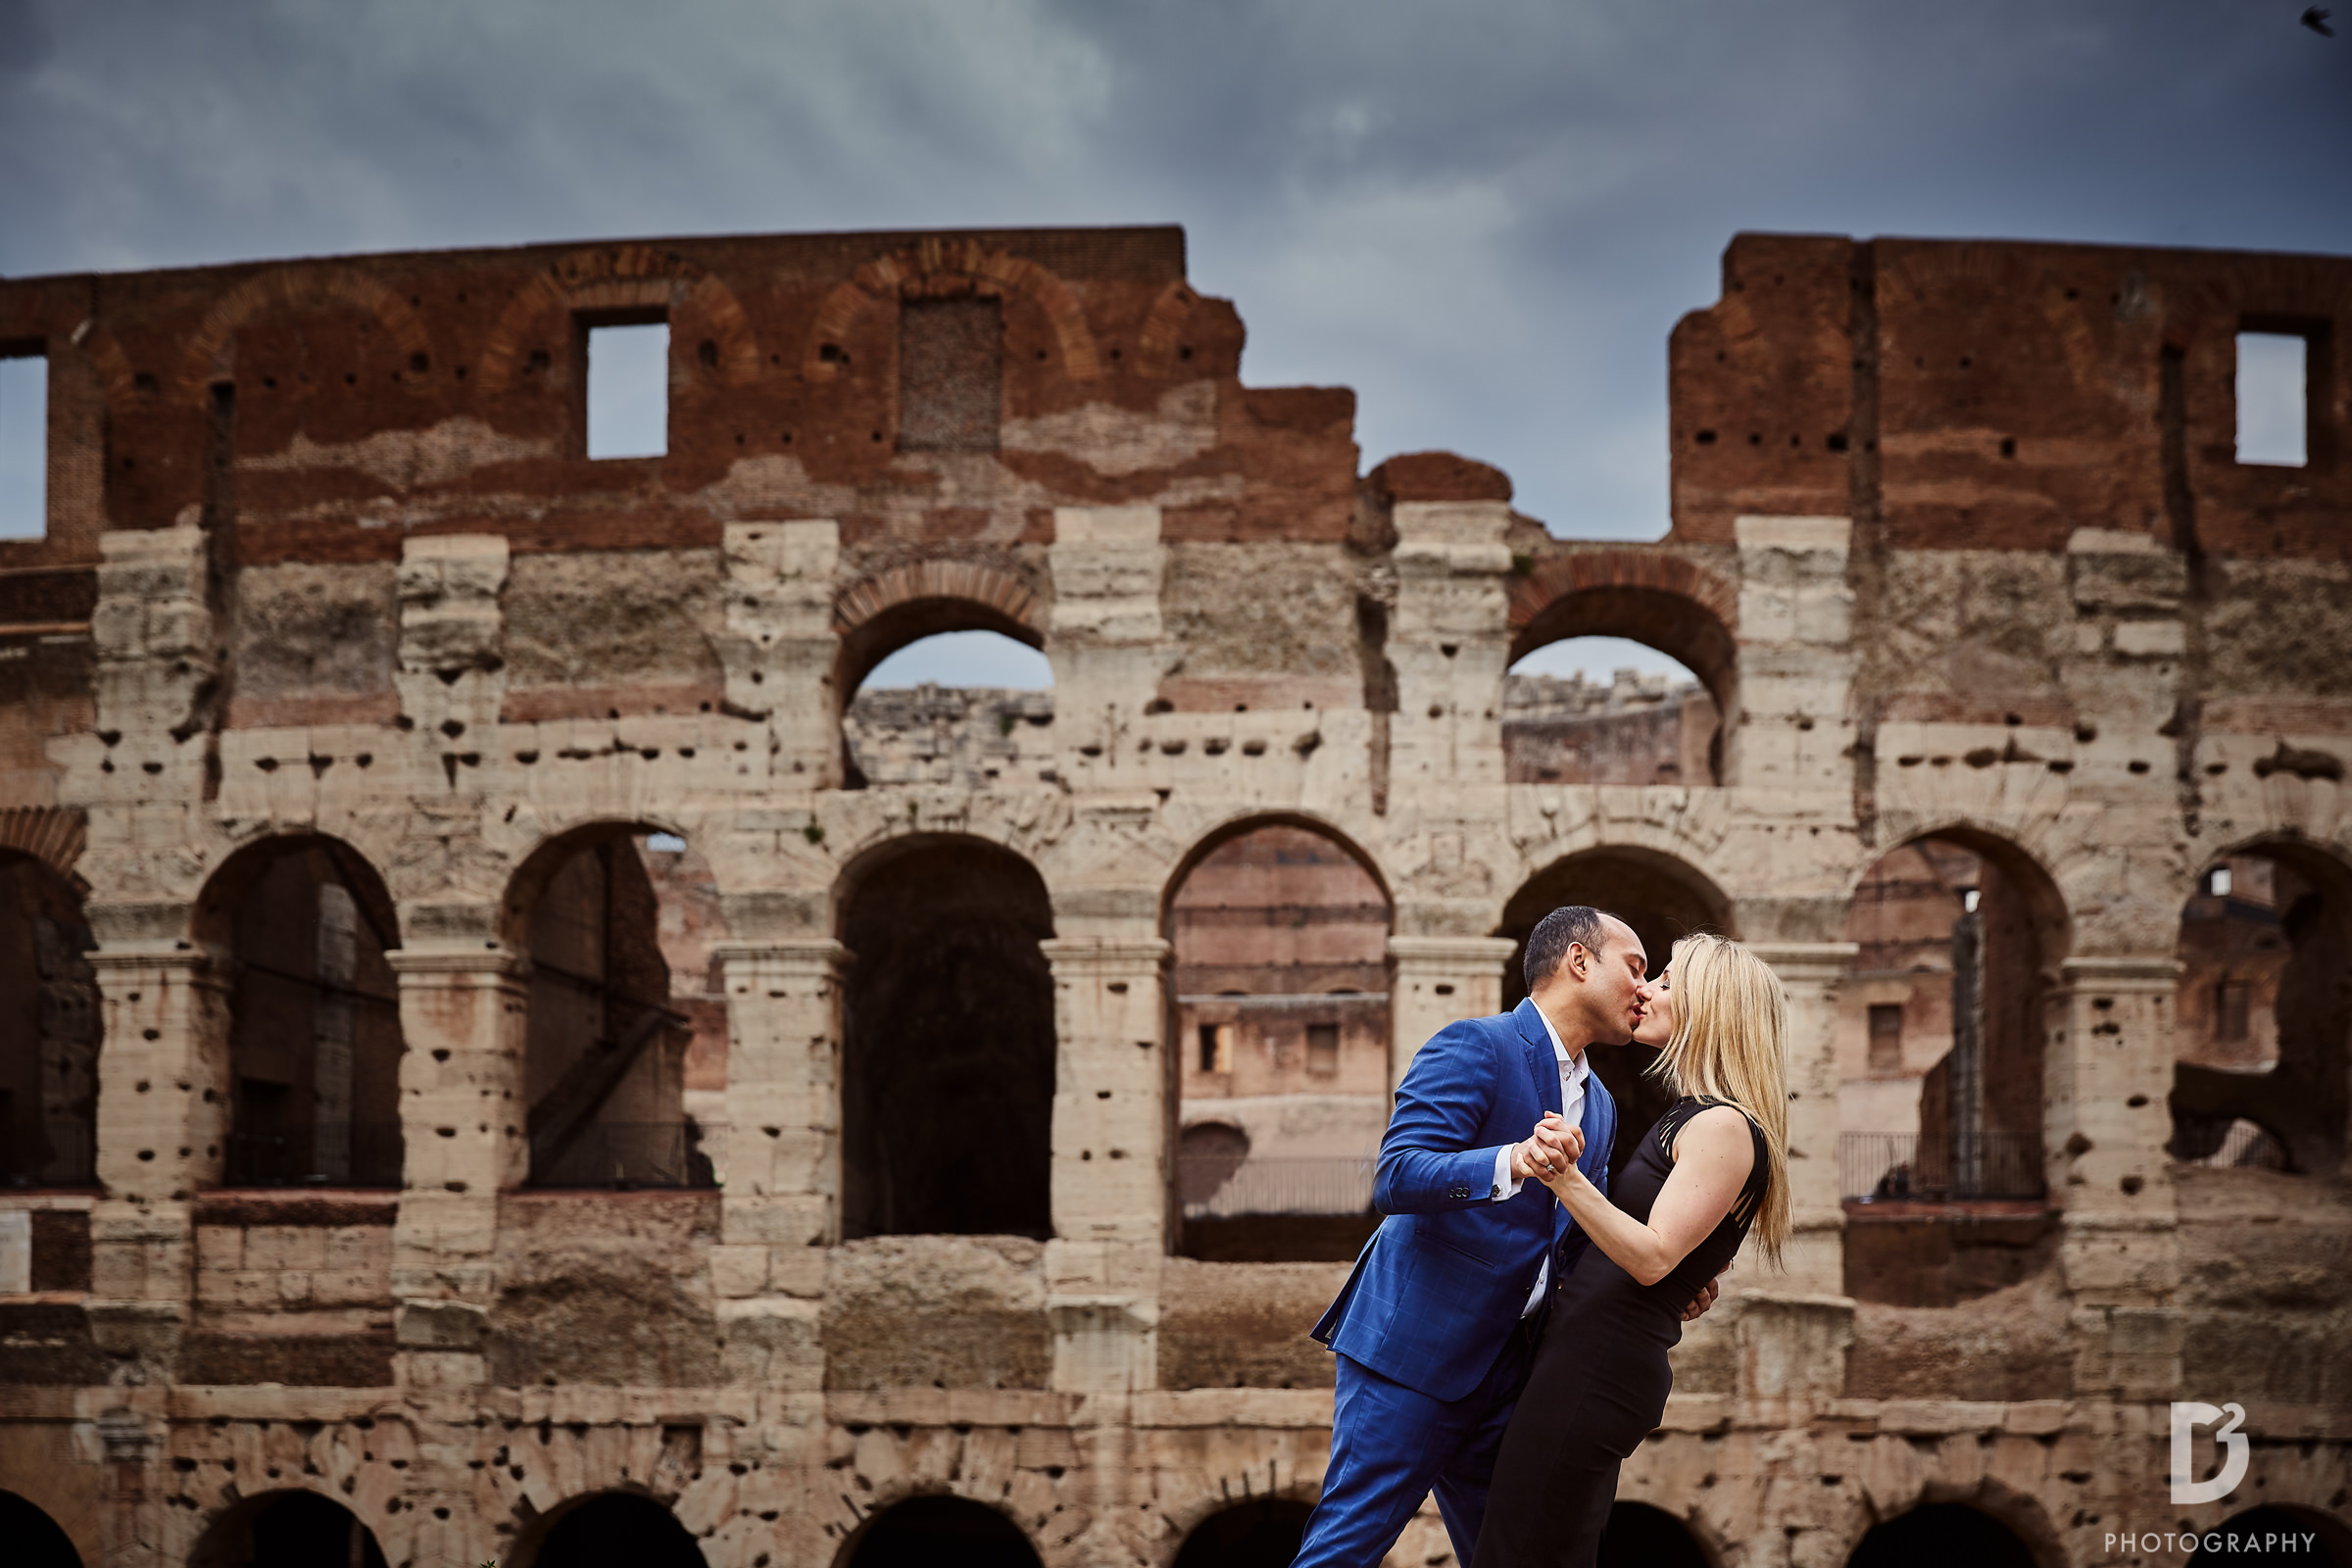 Elopement photo outside of the Coliseum - photo by D2 Photography